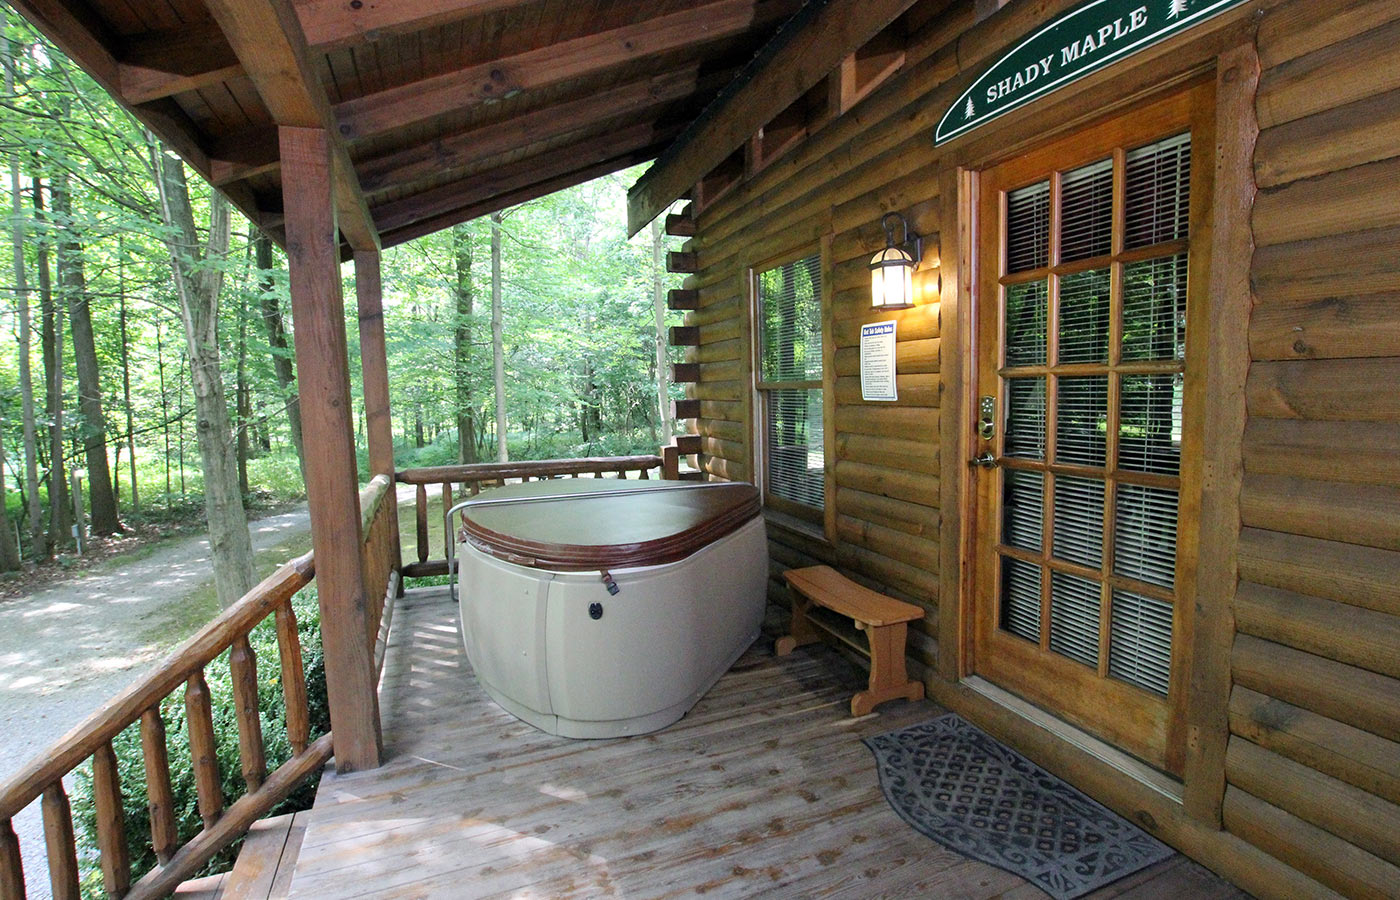 Awe Inspiring Tranquil Acres Cabins Amish Country Ohio Interior Design Ideas Skatsoteloinfo